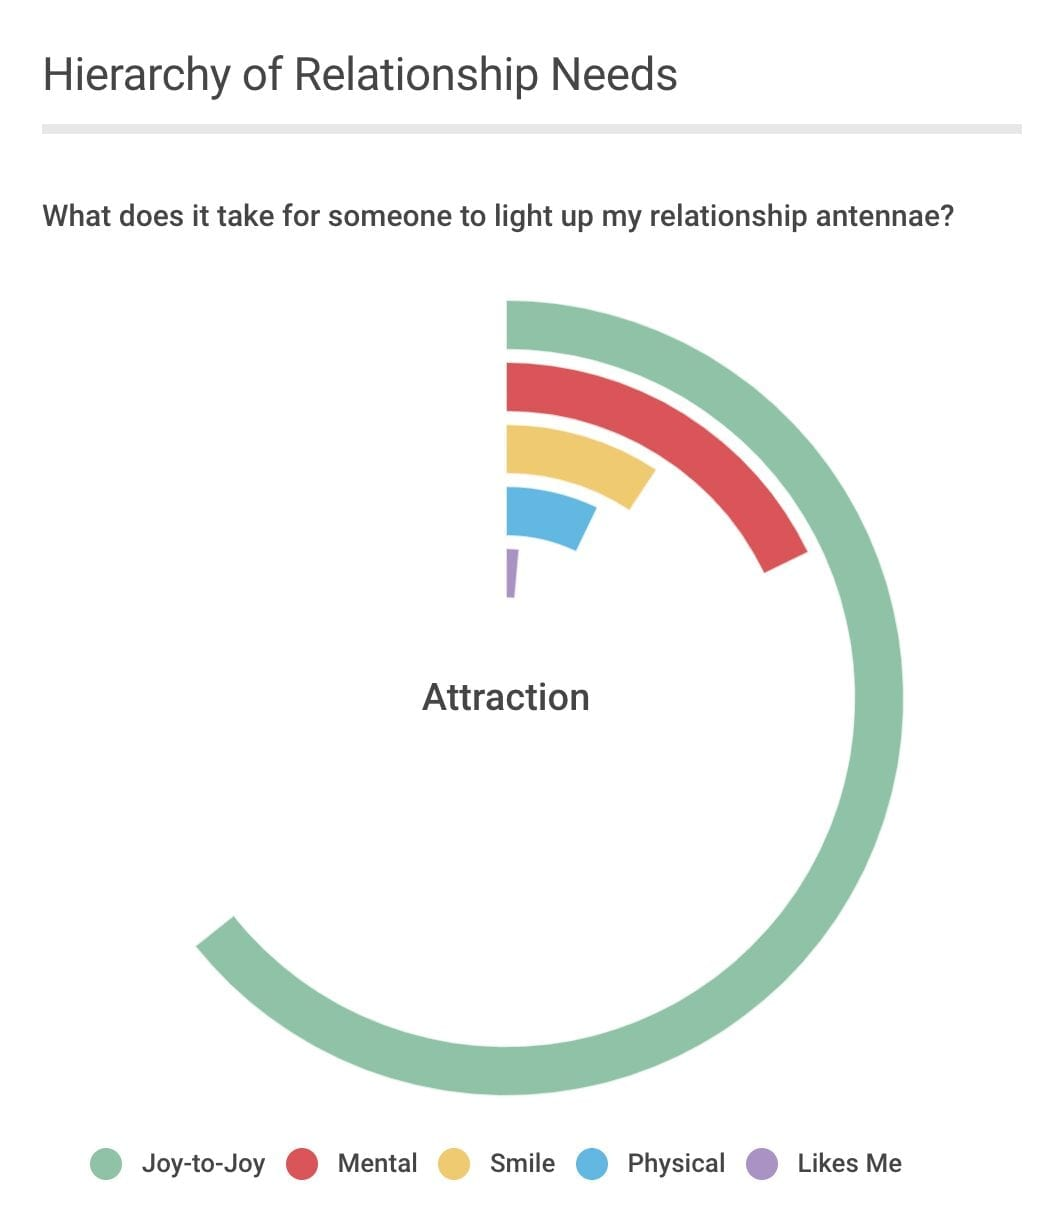 The Hierarchy of Relationship Needs: Four Levels of Attraction